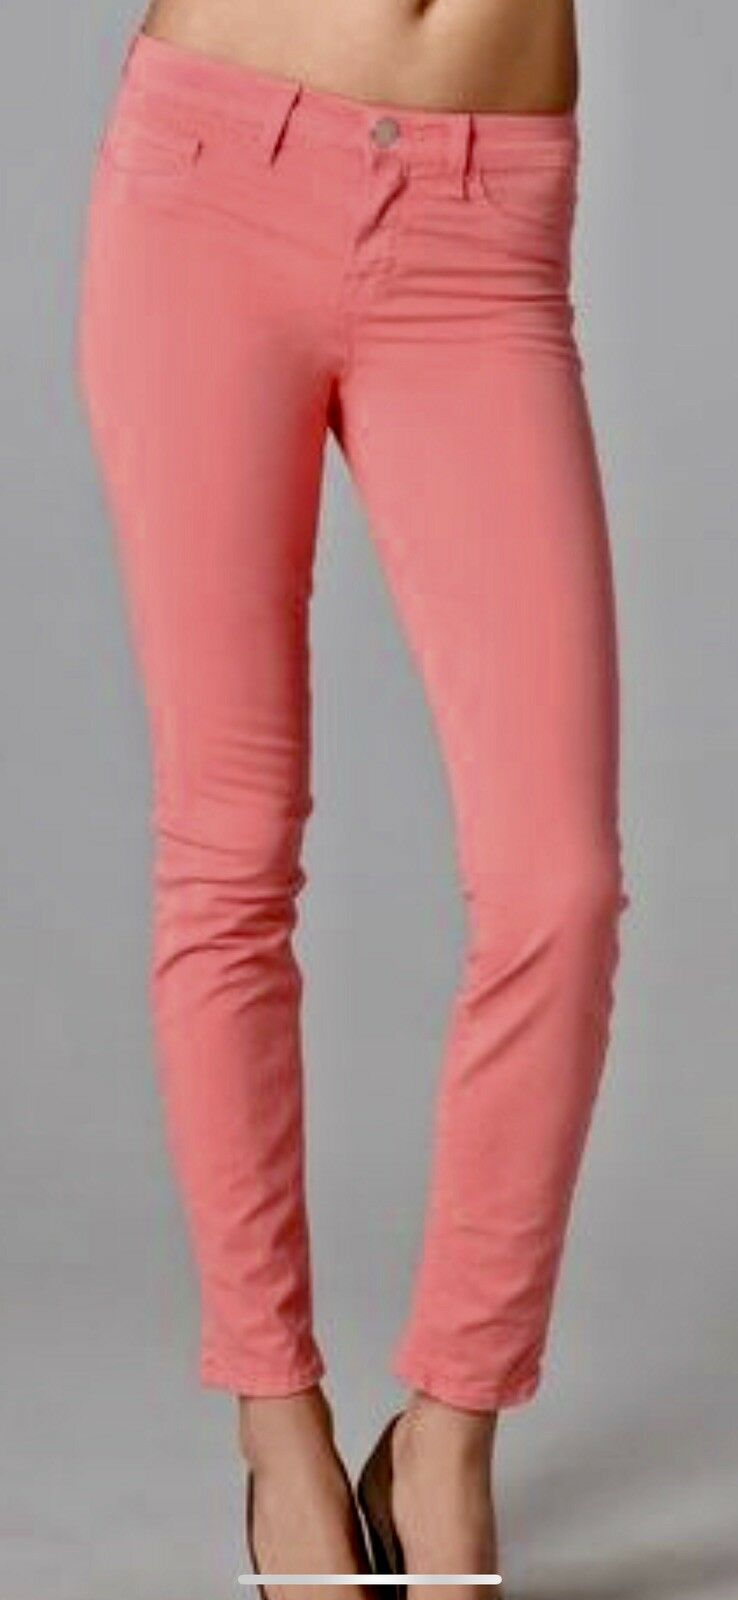 Kut From The Kloth Women's Jeans Brigitte Ankle Skinny Jeans In Coral Size 4 NWT